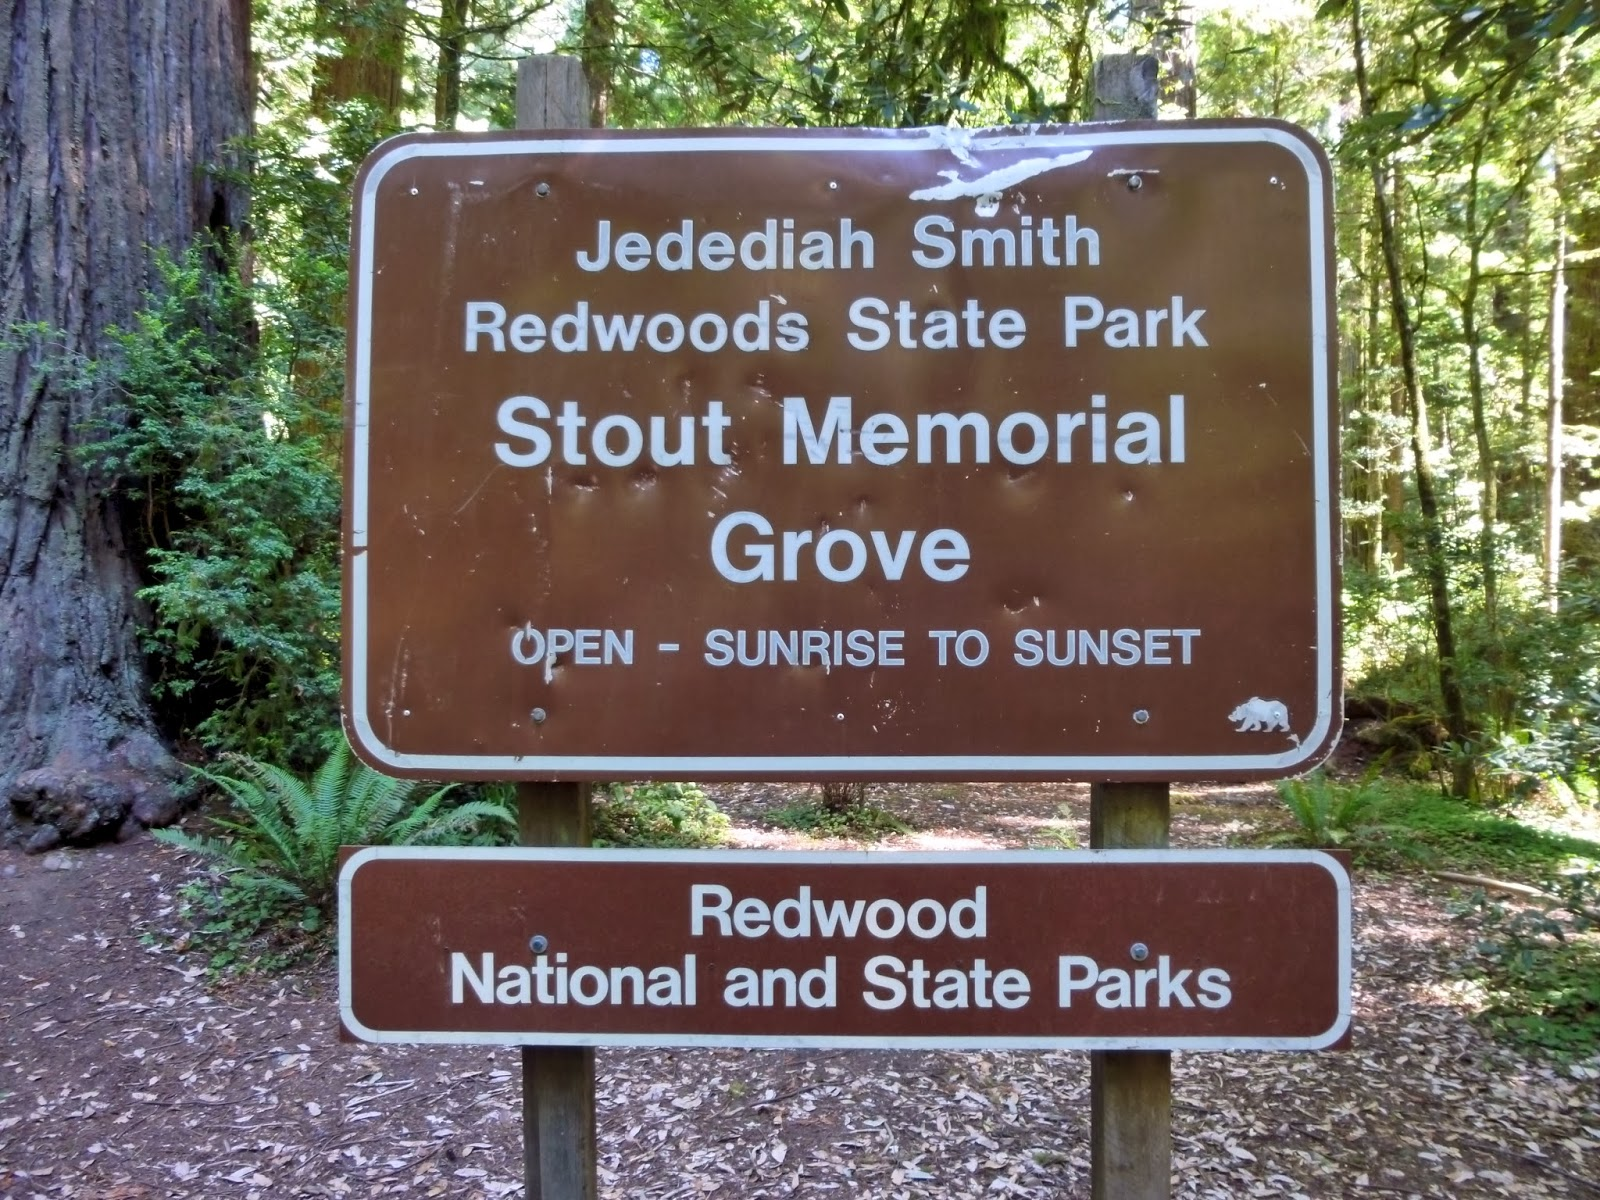 American Travel Journal Myrtle Beach Smith River National Wild And - Stout memorial grove redwood national and state parks